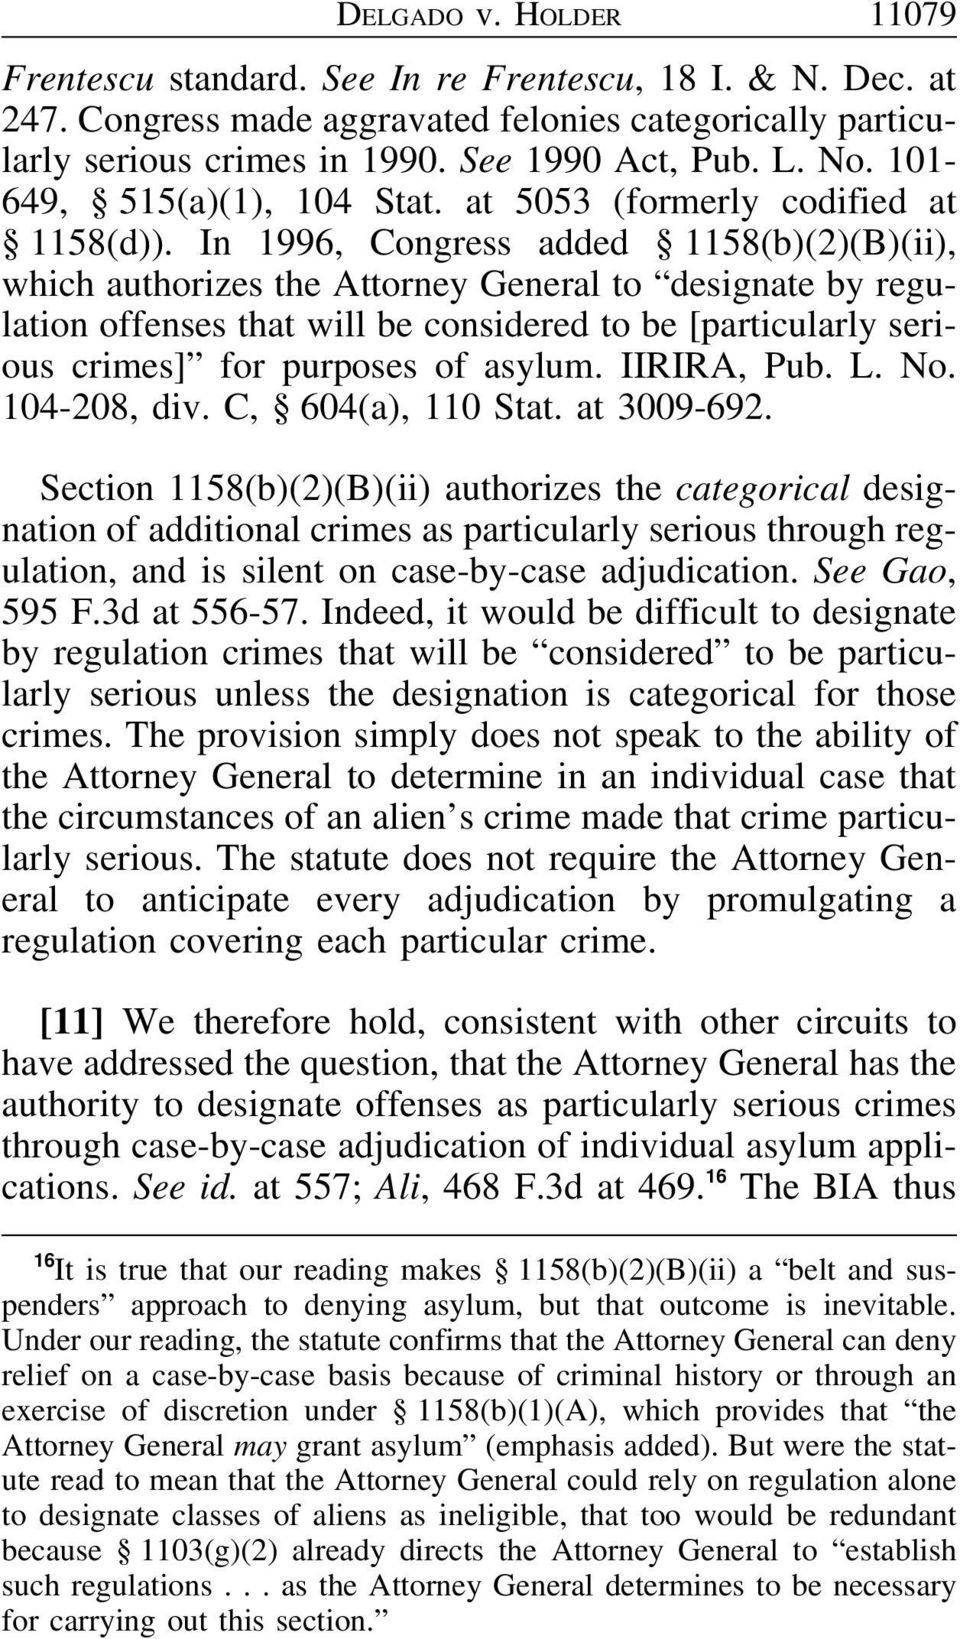 In 1996, Congress added 1158(b)(2)(B)(ii), which authorizes the Attorney General to designate by regulation offenses that will be considered to be [particularly serious crimes] for purposes of asylum.